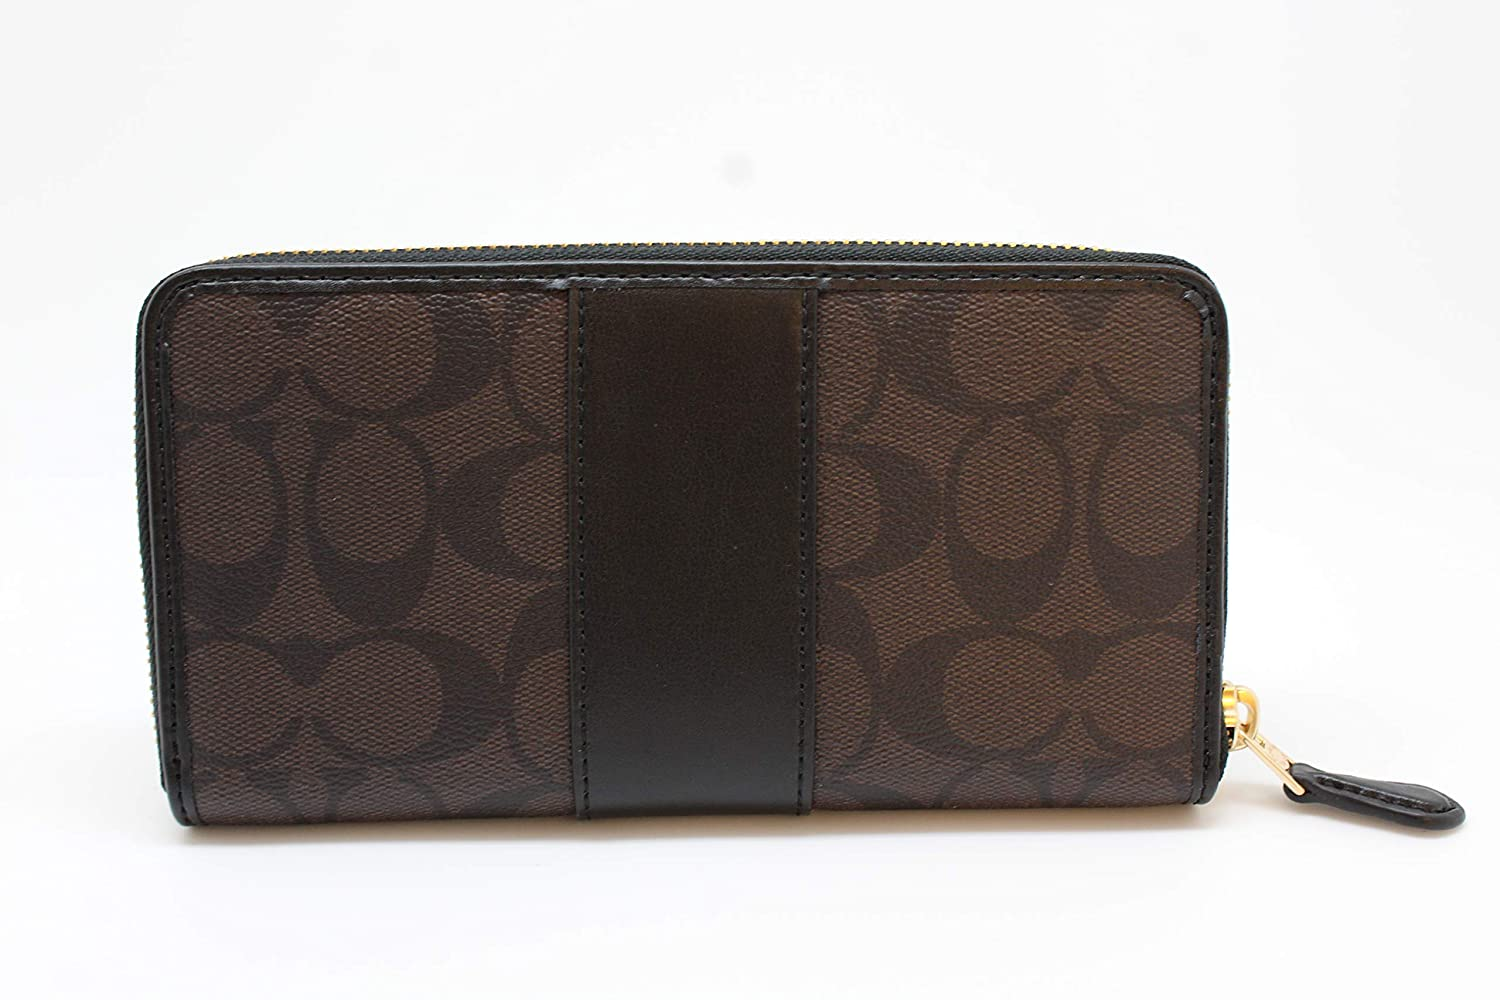 cheaper d5a8c 72d11 norway brown and black coach wallet 5cce1 8b1e1